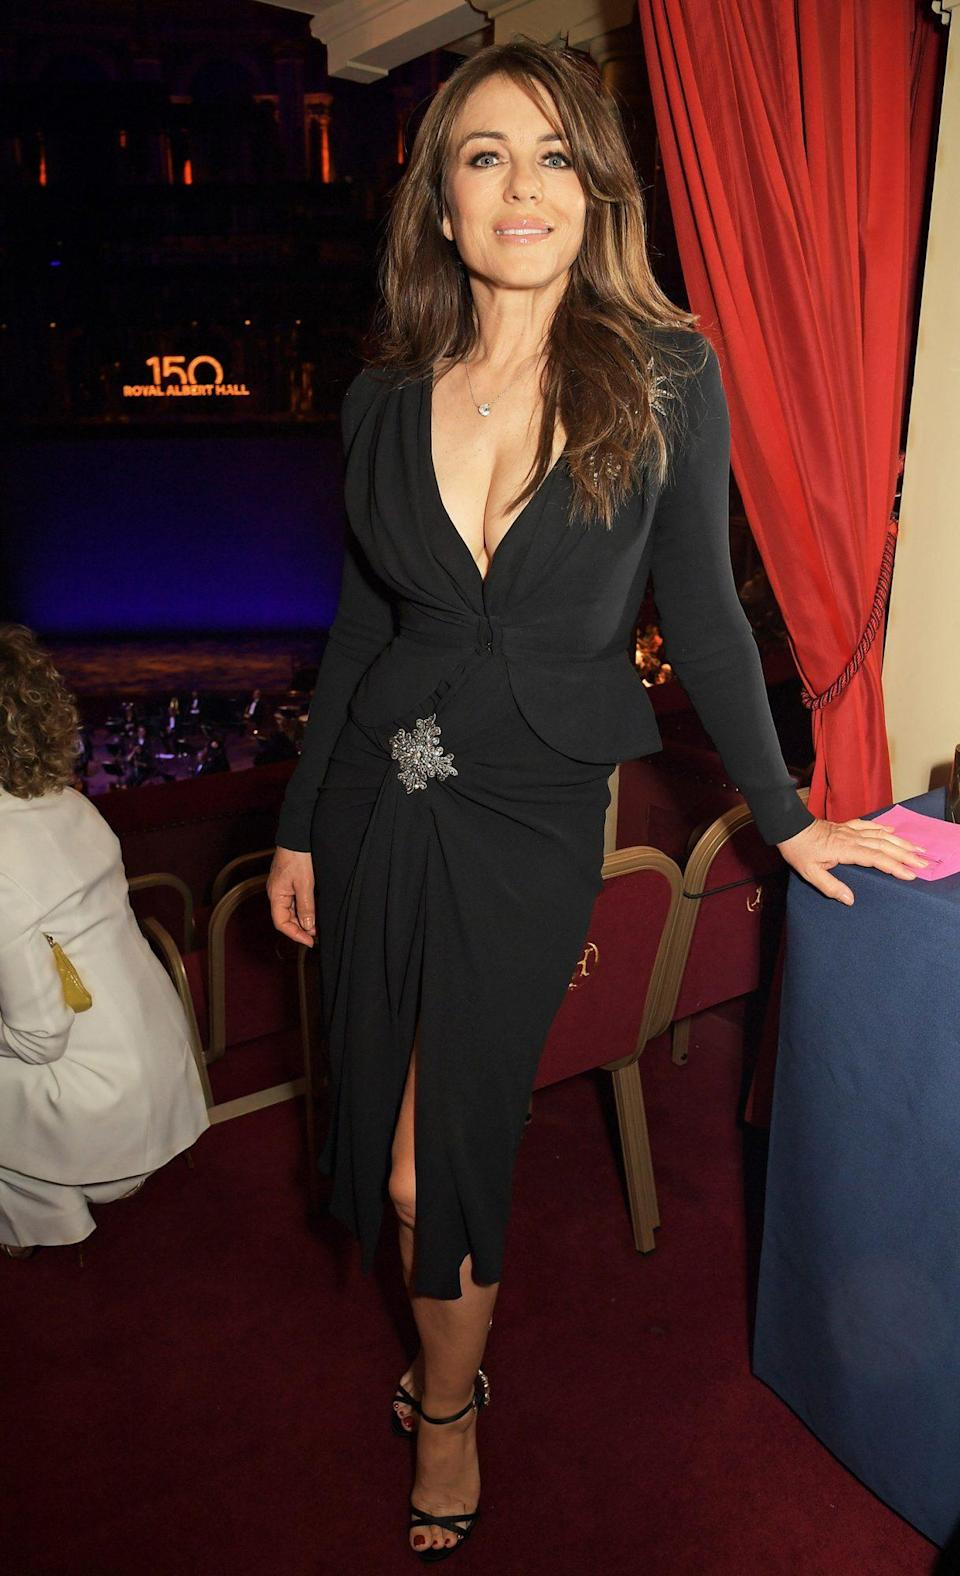 """<p>Elizabeth Hurley (<a href=""""https://people.com/movies/elizabeth-hurley-says-shes-still-friends-with-hugh-grant/"""" rel=""""nofollow noopener"""" target=""""_blank"""" data-ylk=""""slk:who recently spoke to us for our PEOPLE in the '90s podcast"""" class=""""link rapid-noclick-resp"""">who recently spoke to us for our PEOPLE in the '90s podcast</a>!) turns heads as she arrives at the inaugural British Ballet Charity Gala, presented by Dame Darcey Bussell, at The Royal Albert Hall in London on June 3. </p>"""